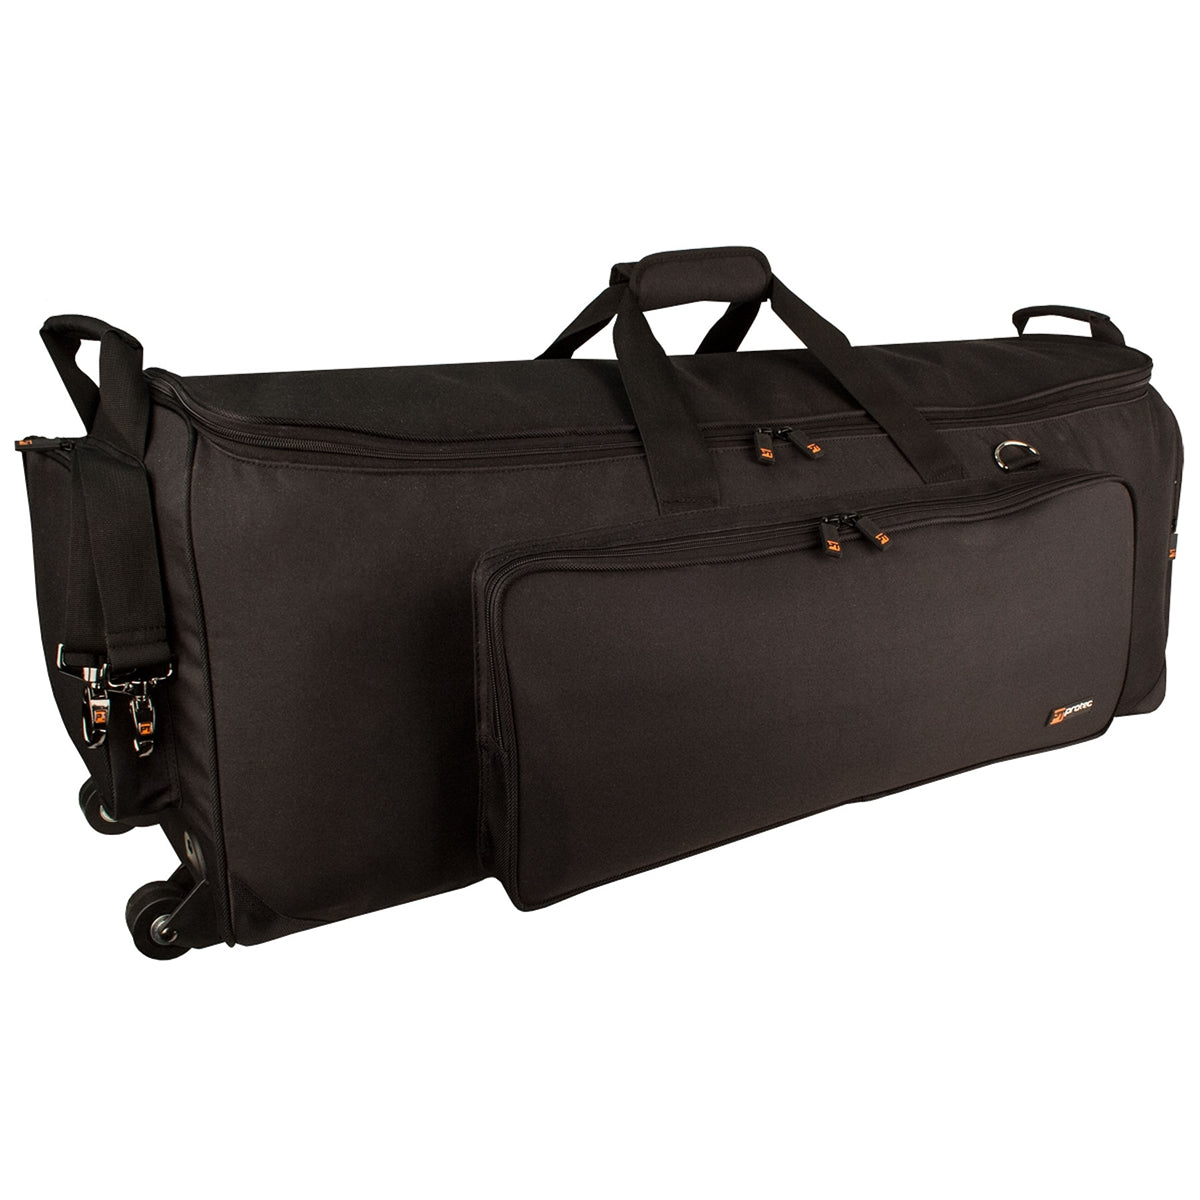 PROTEC Deluxe Drum Hardware Bag